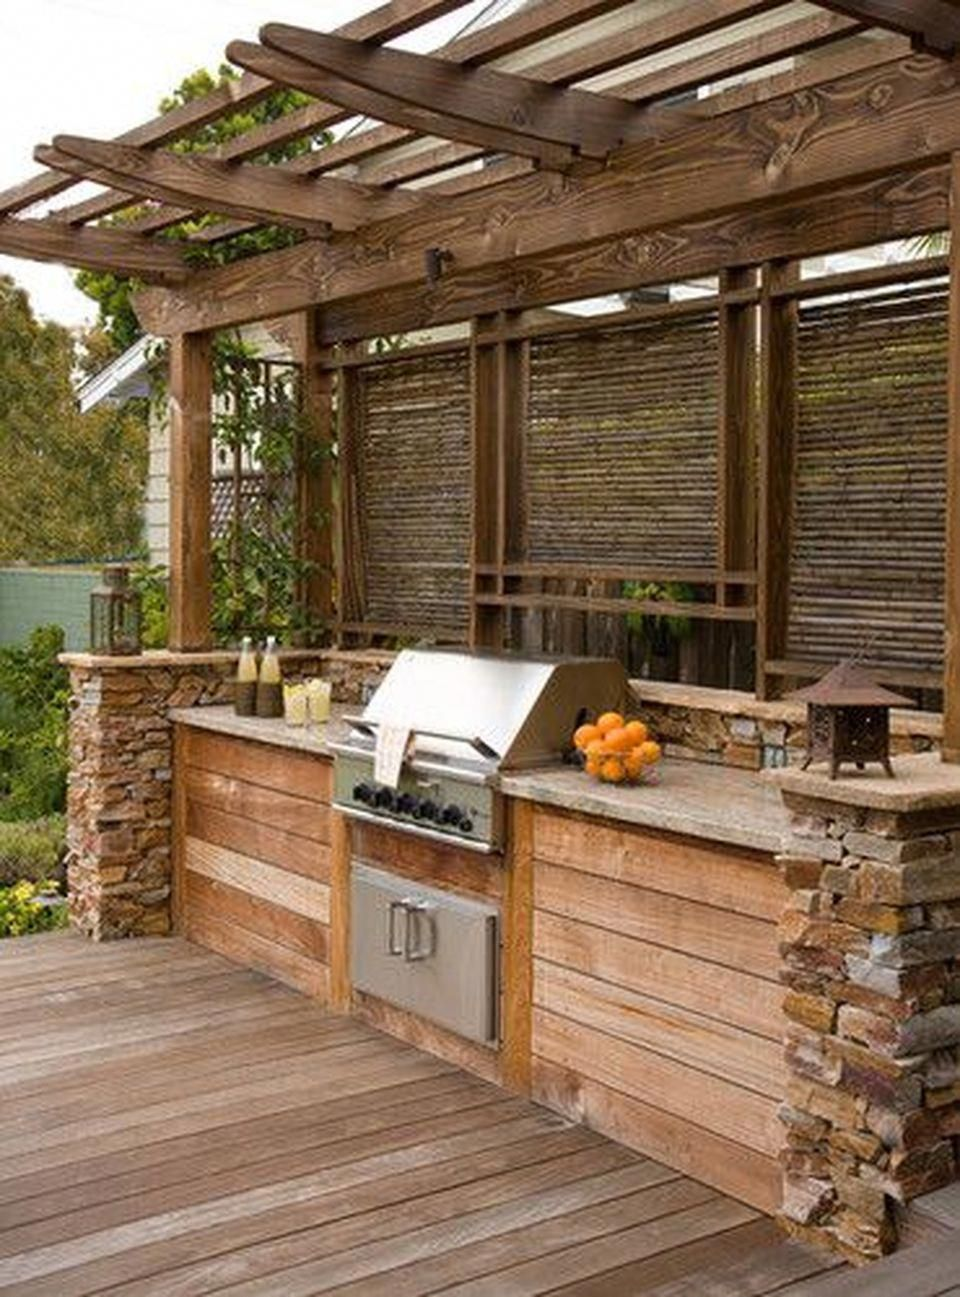 Most Popular Outdoor Kitchen Ideas For Small Spaces Kitchen Outdoor Ideas Small Farmhouse Outdoor Kitchen Rustic Outdoor Kitchens Outdoor Kitchen Design